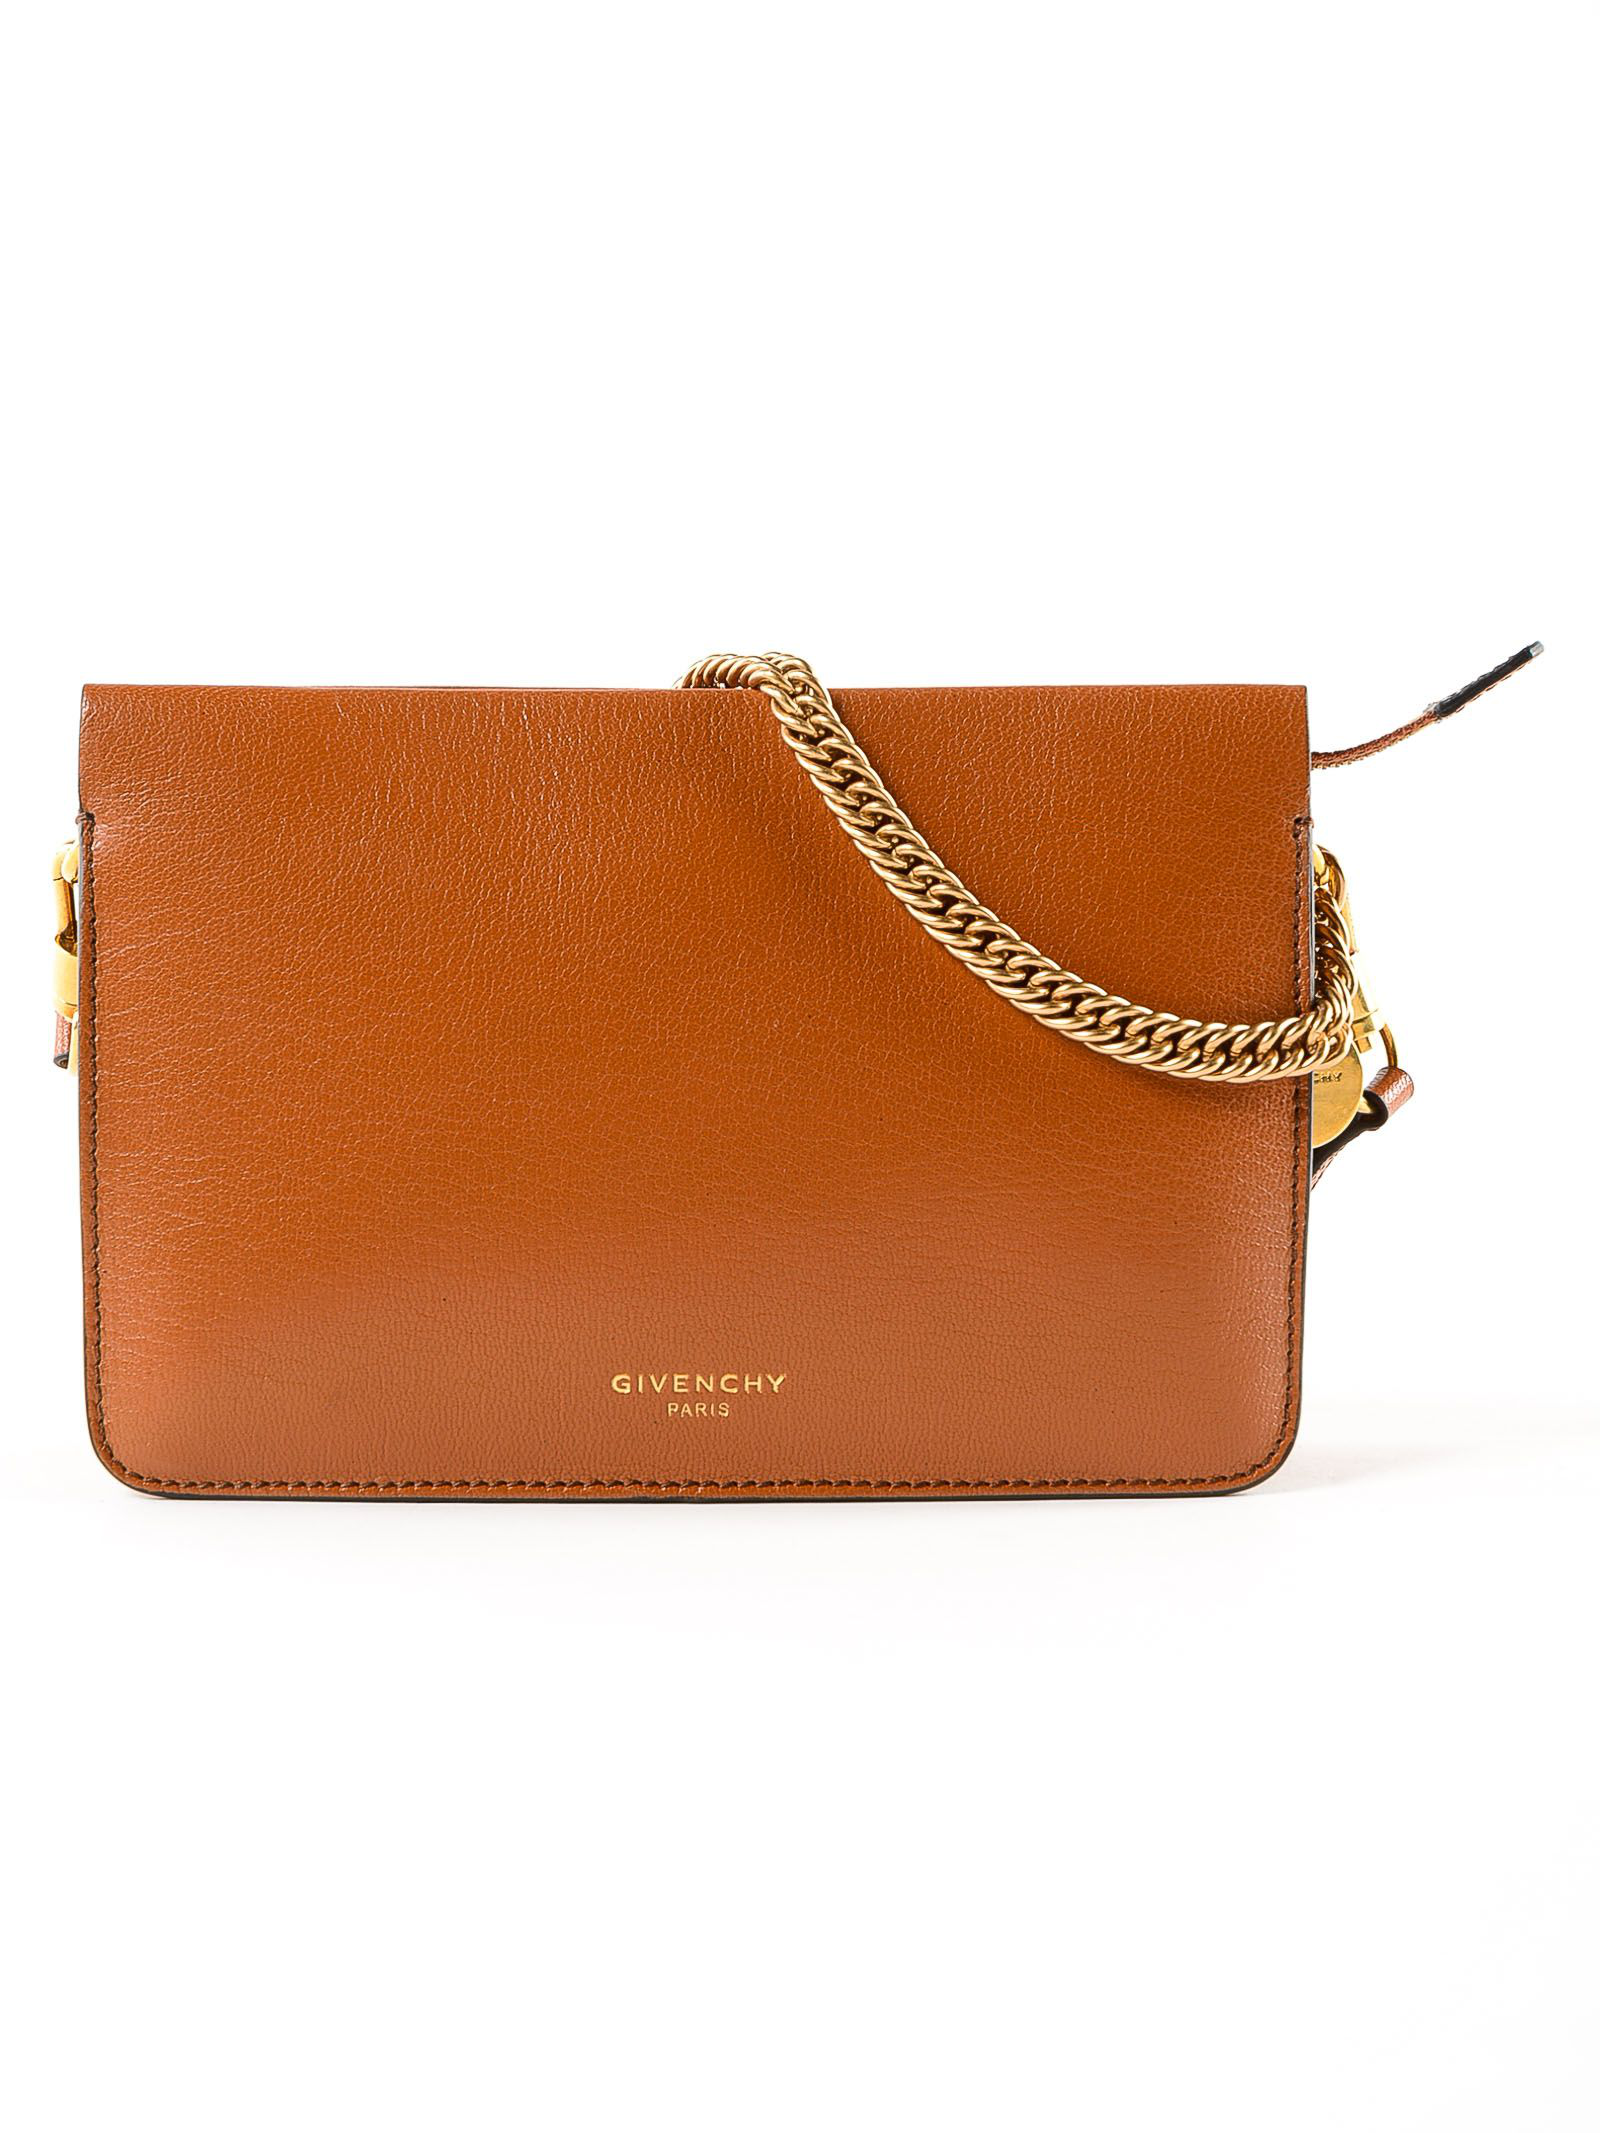 6e1563f9be3c Givenchy Triple Leather Crossbody Bag